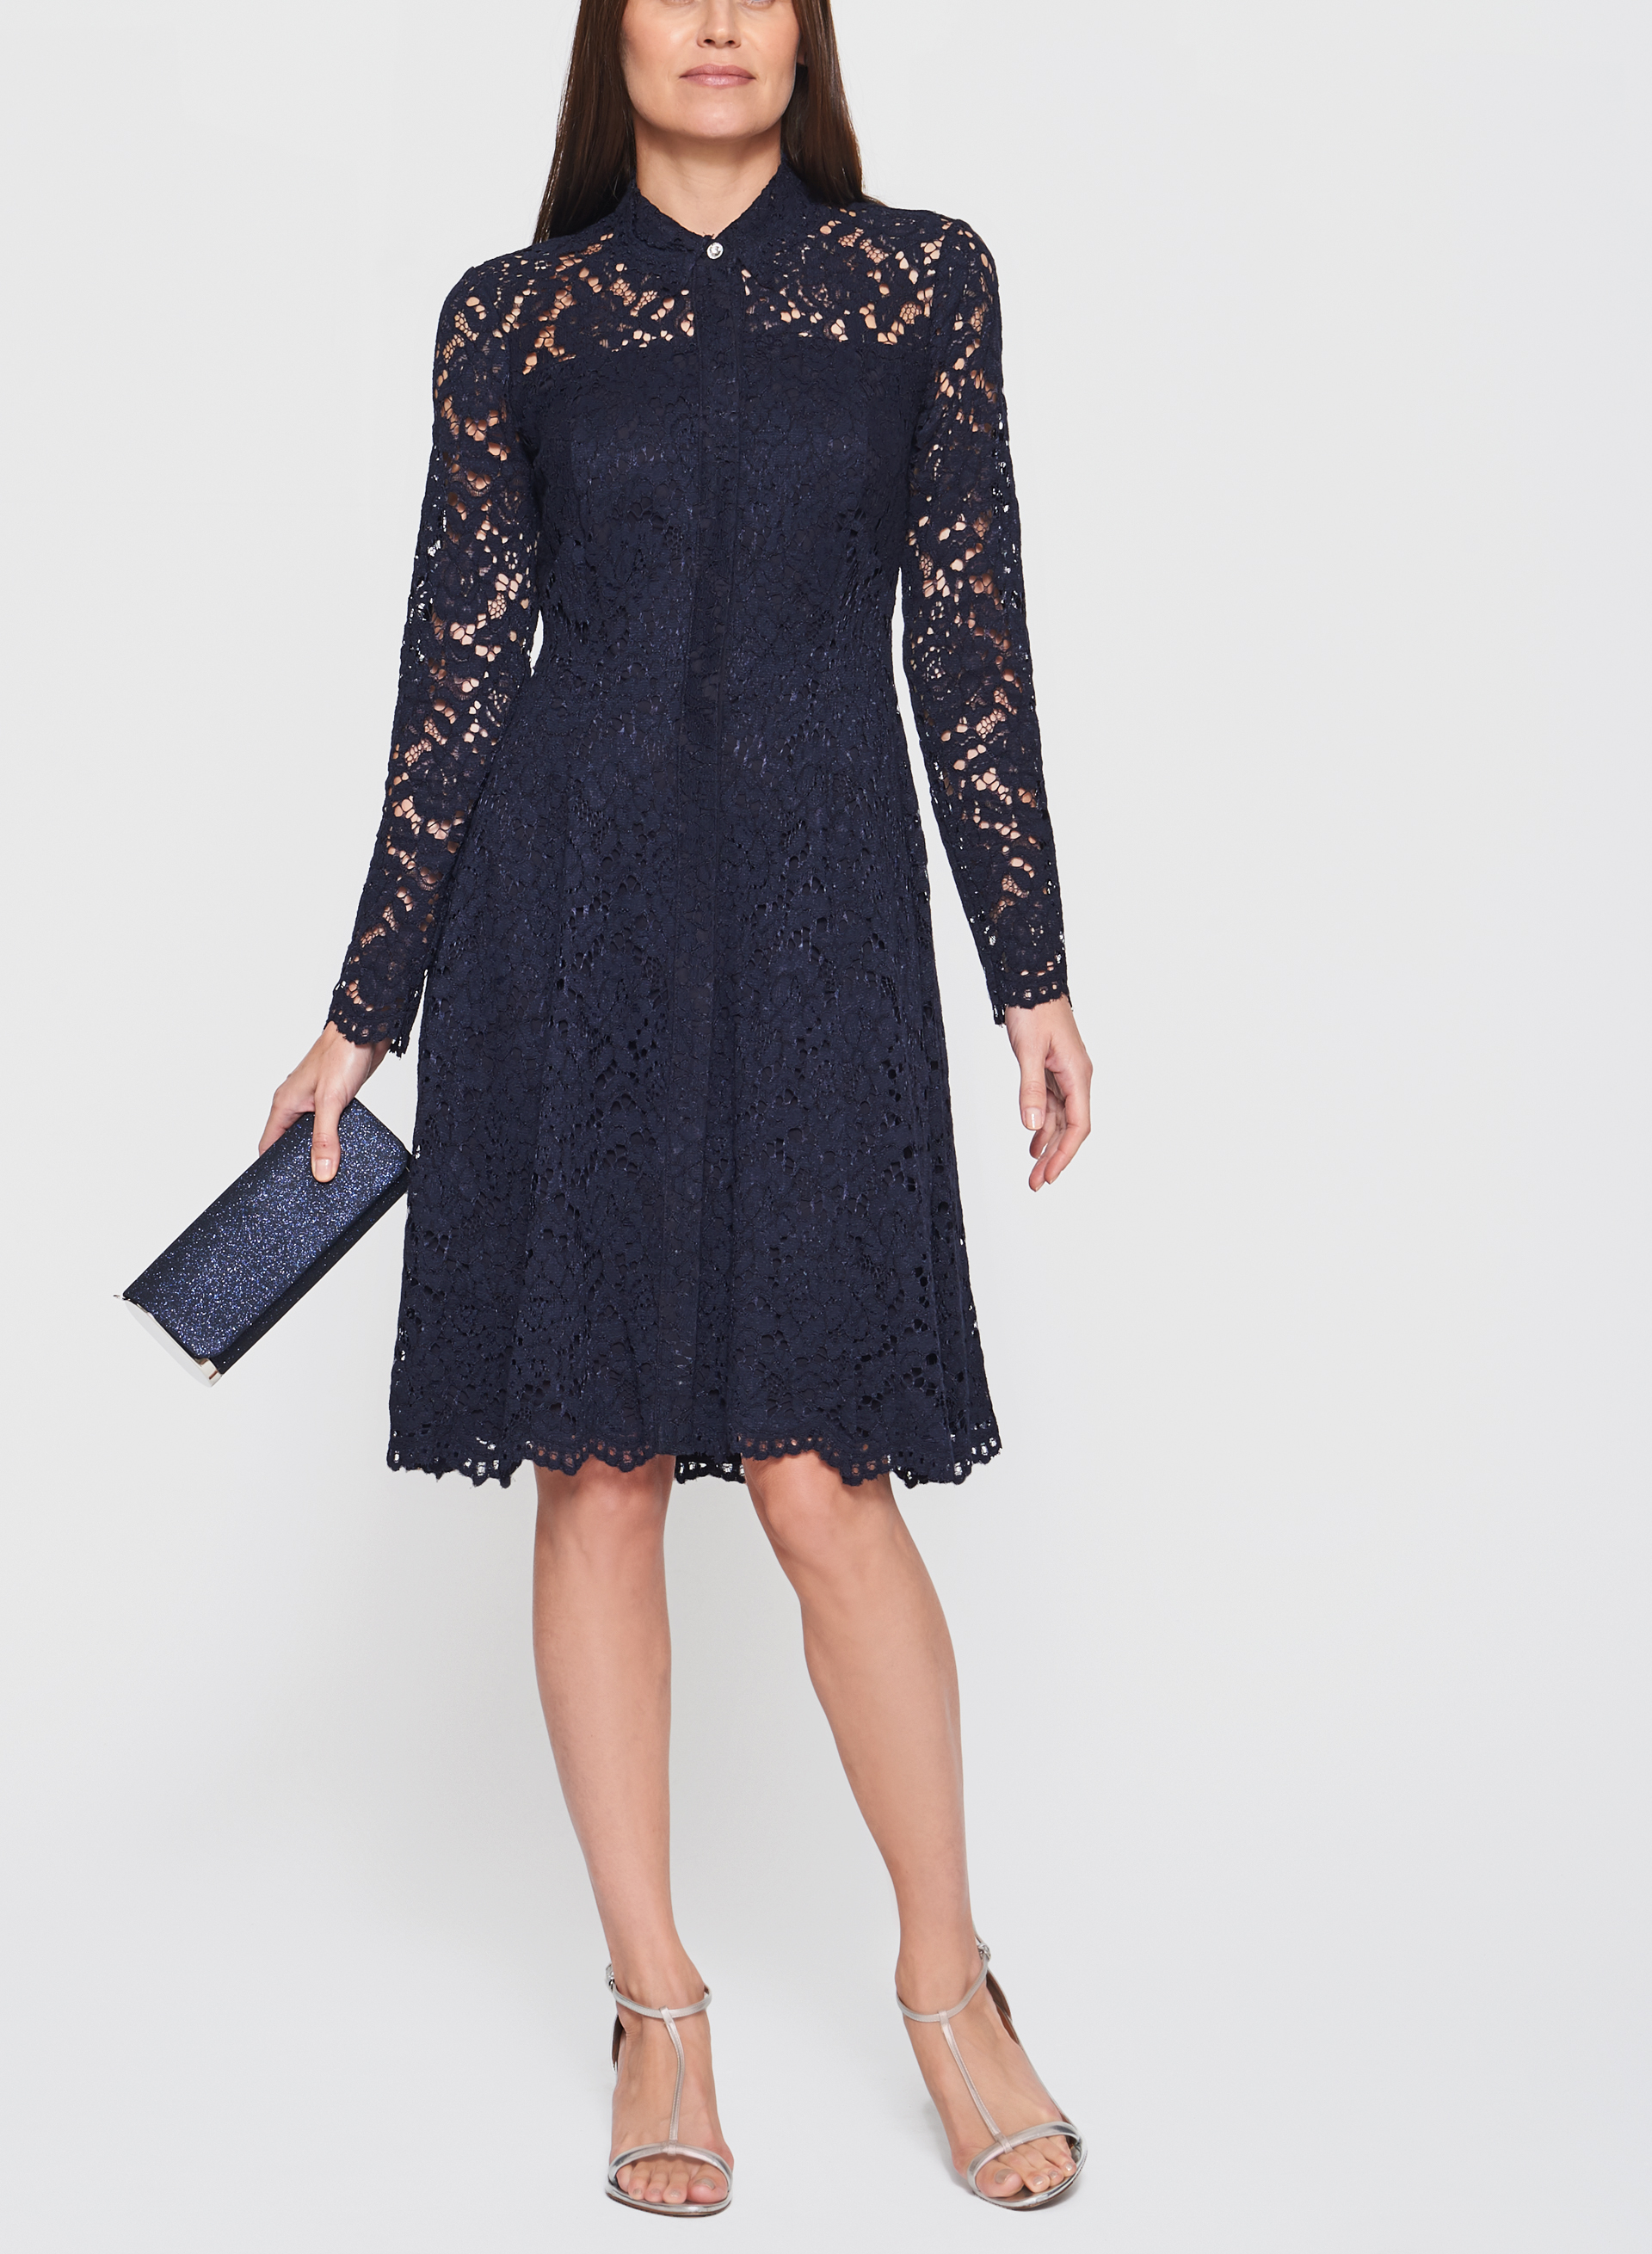 Maggy London - Cotton Lace Button Down Dress, Blue, hi-res